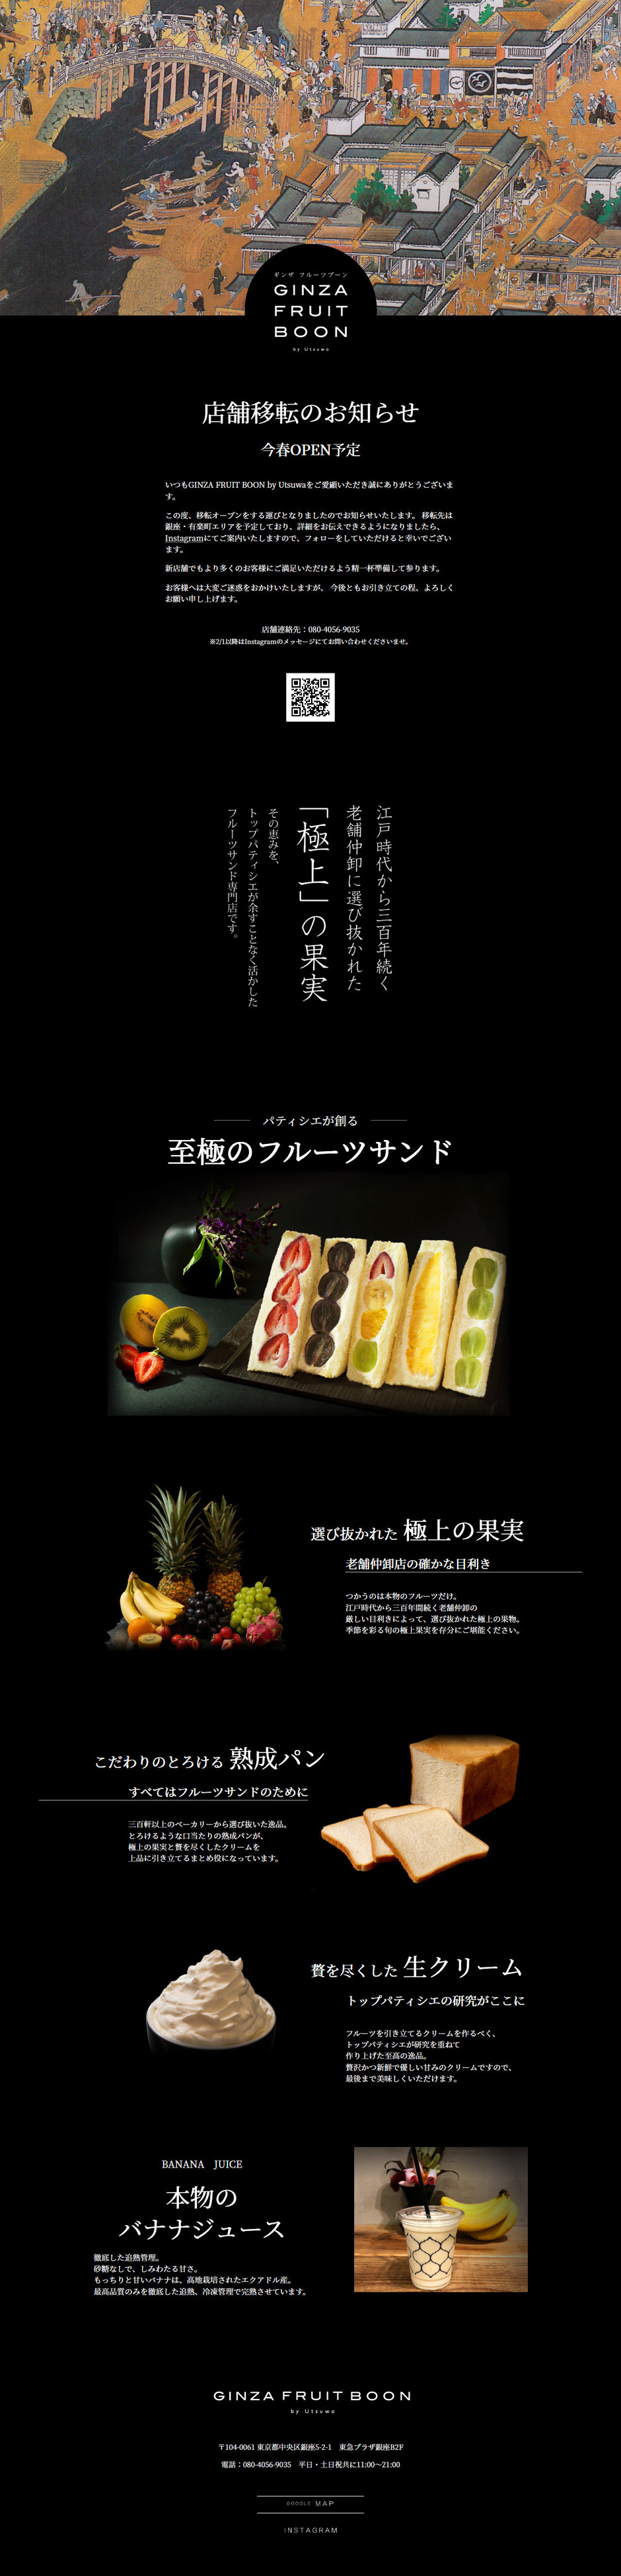 GINZA FRUIT BOON by Utsuwaの画面